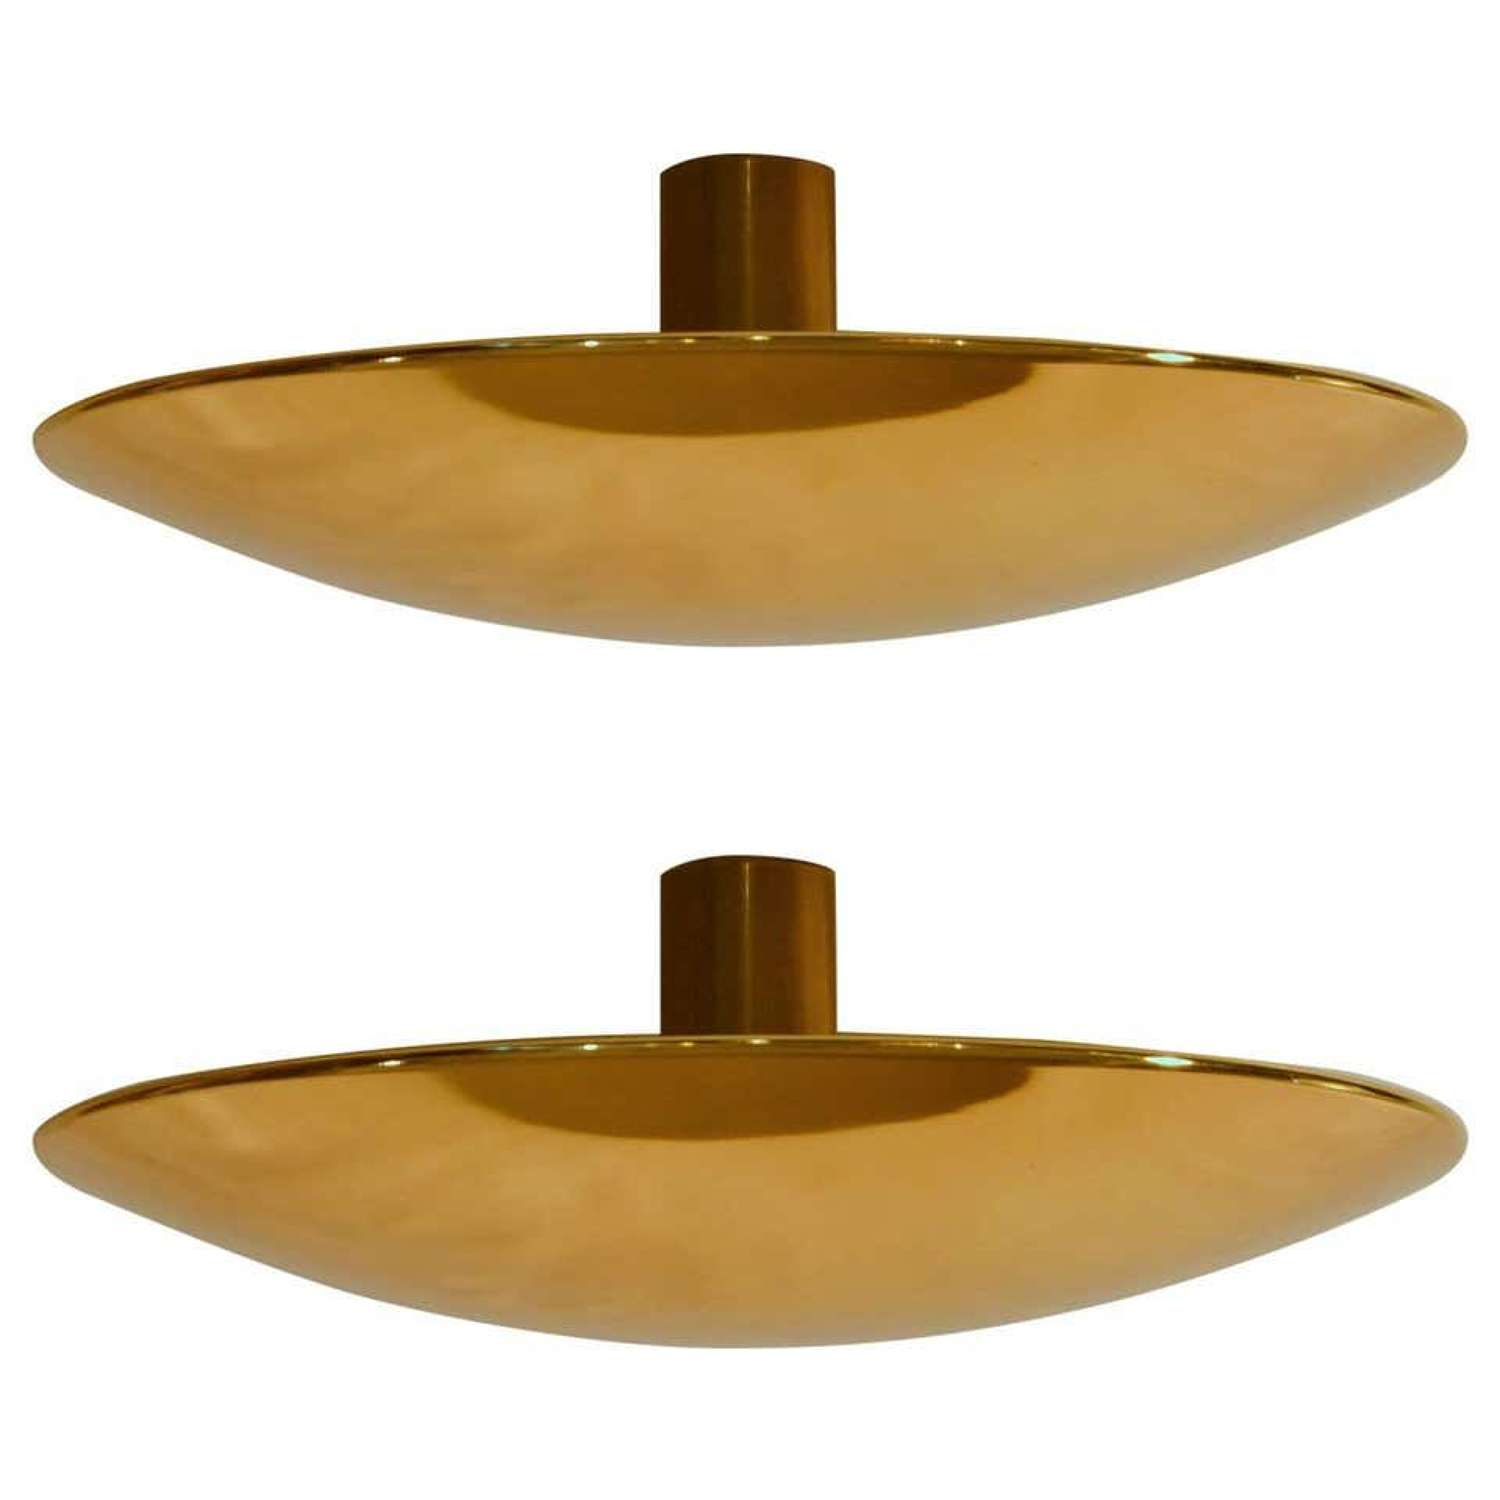 Pair of Brass Flush Ceiling or Wall Lights by F. Schulz